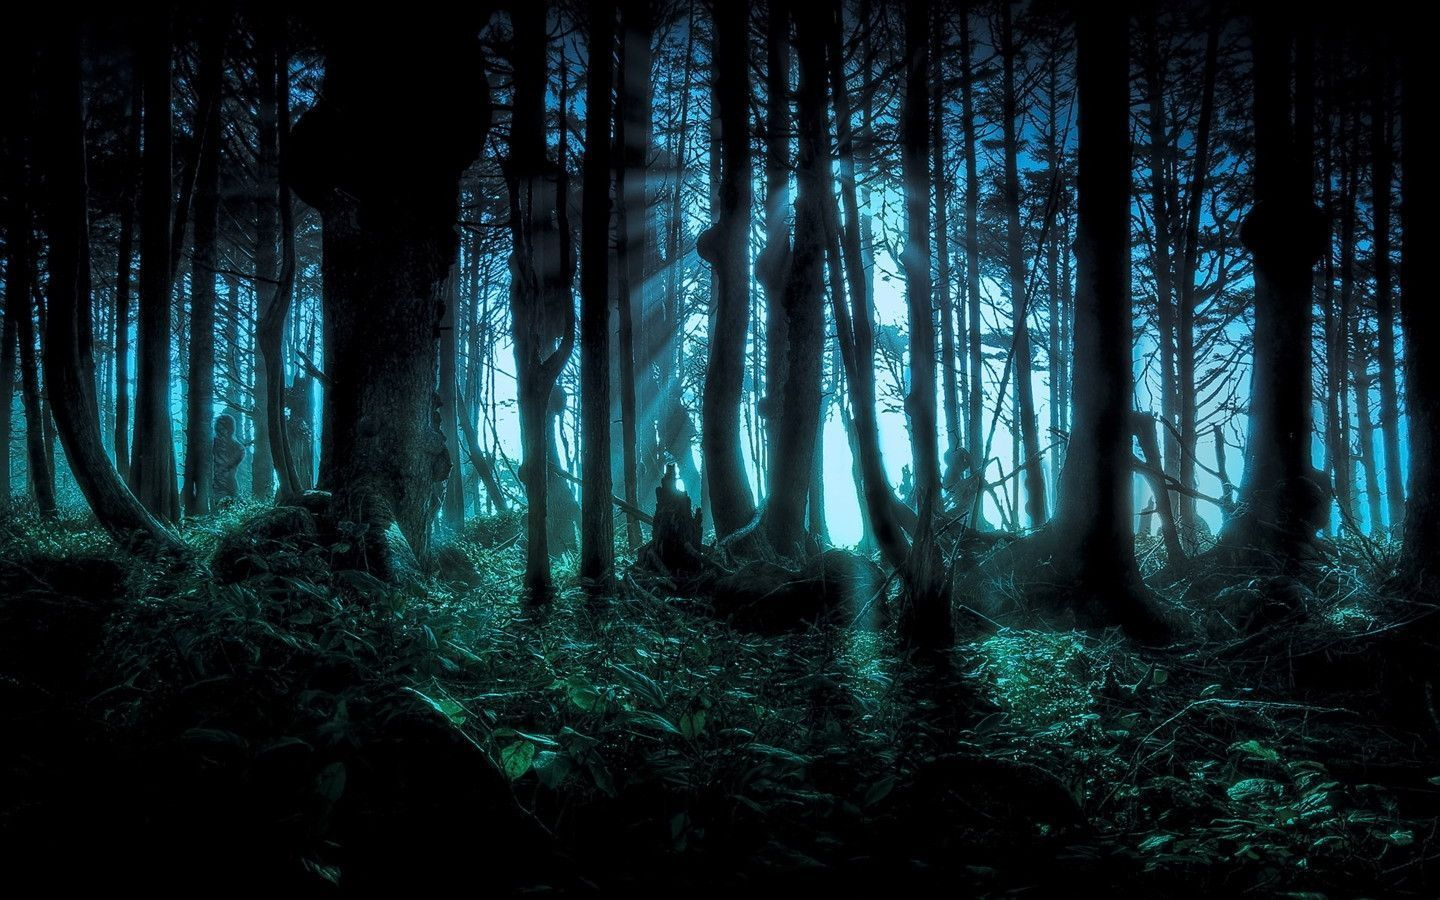 Images For Anime Forest Background Wald Tapete Mystischer Wald Dunklen Wald